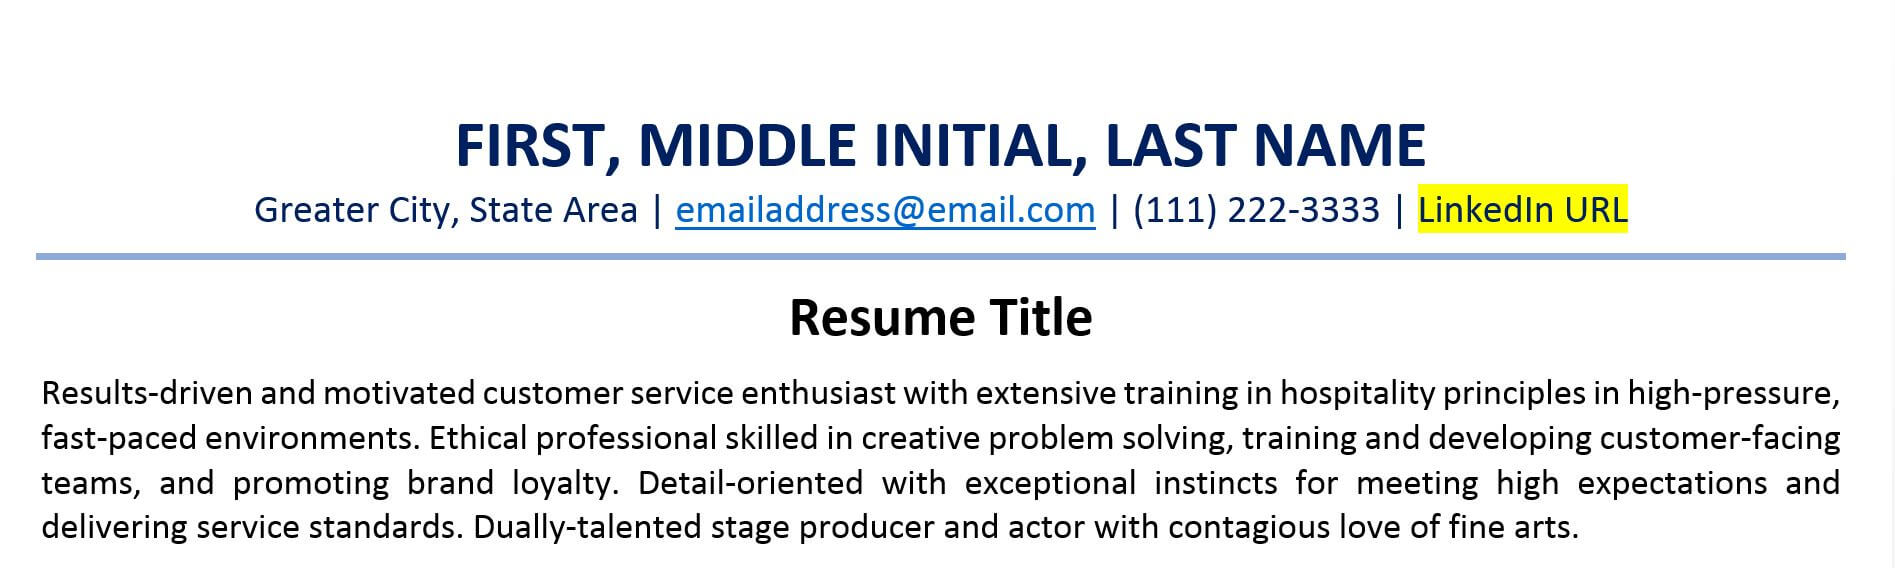 no fail resume tips for older workers examples zipjob writing applicants linkedin url on Resume Resume Writing Tips For Older Applicants